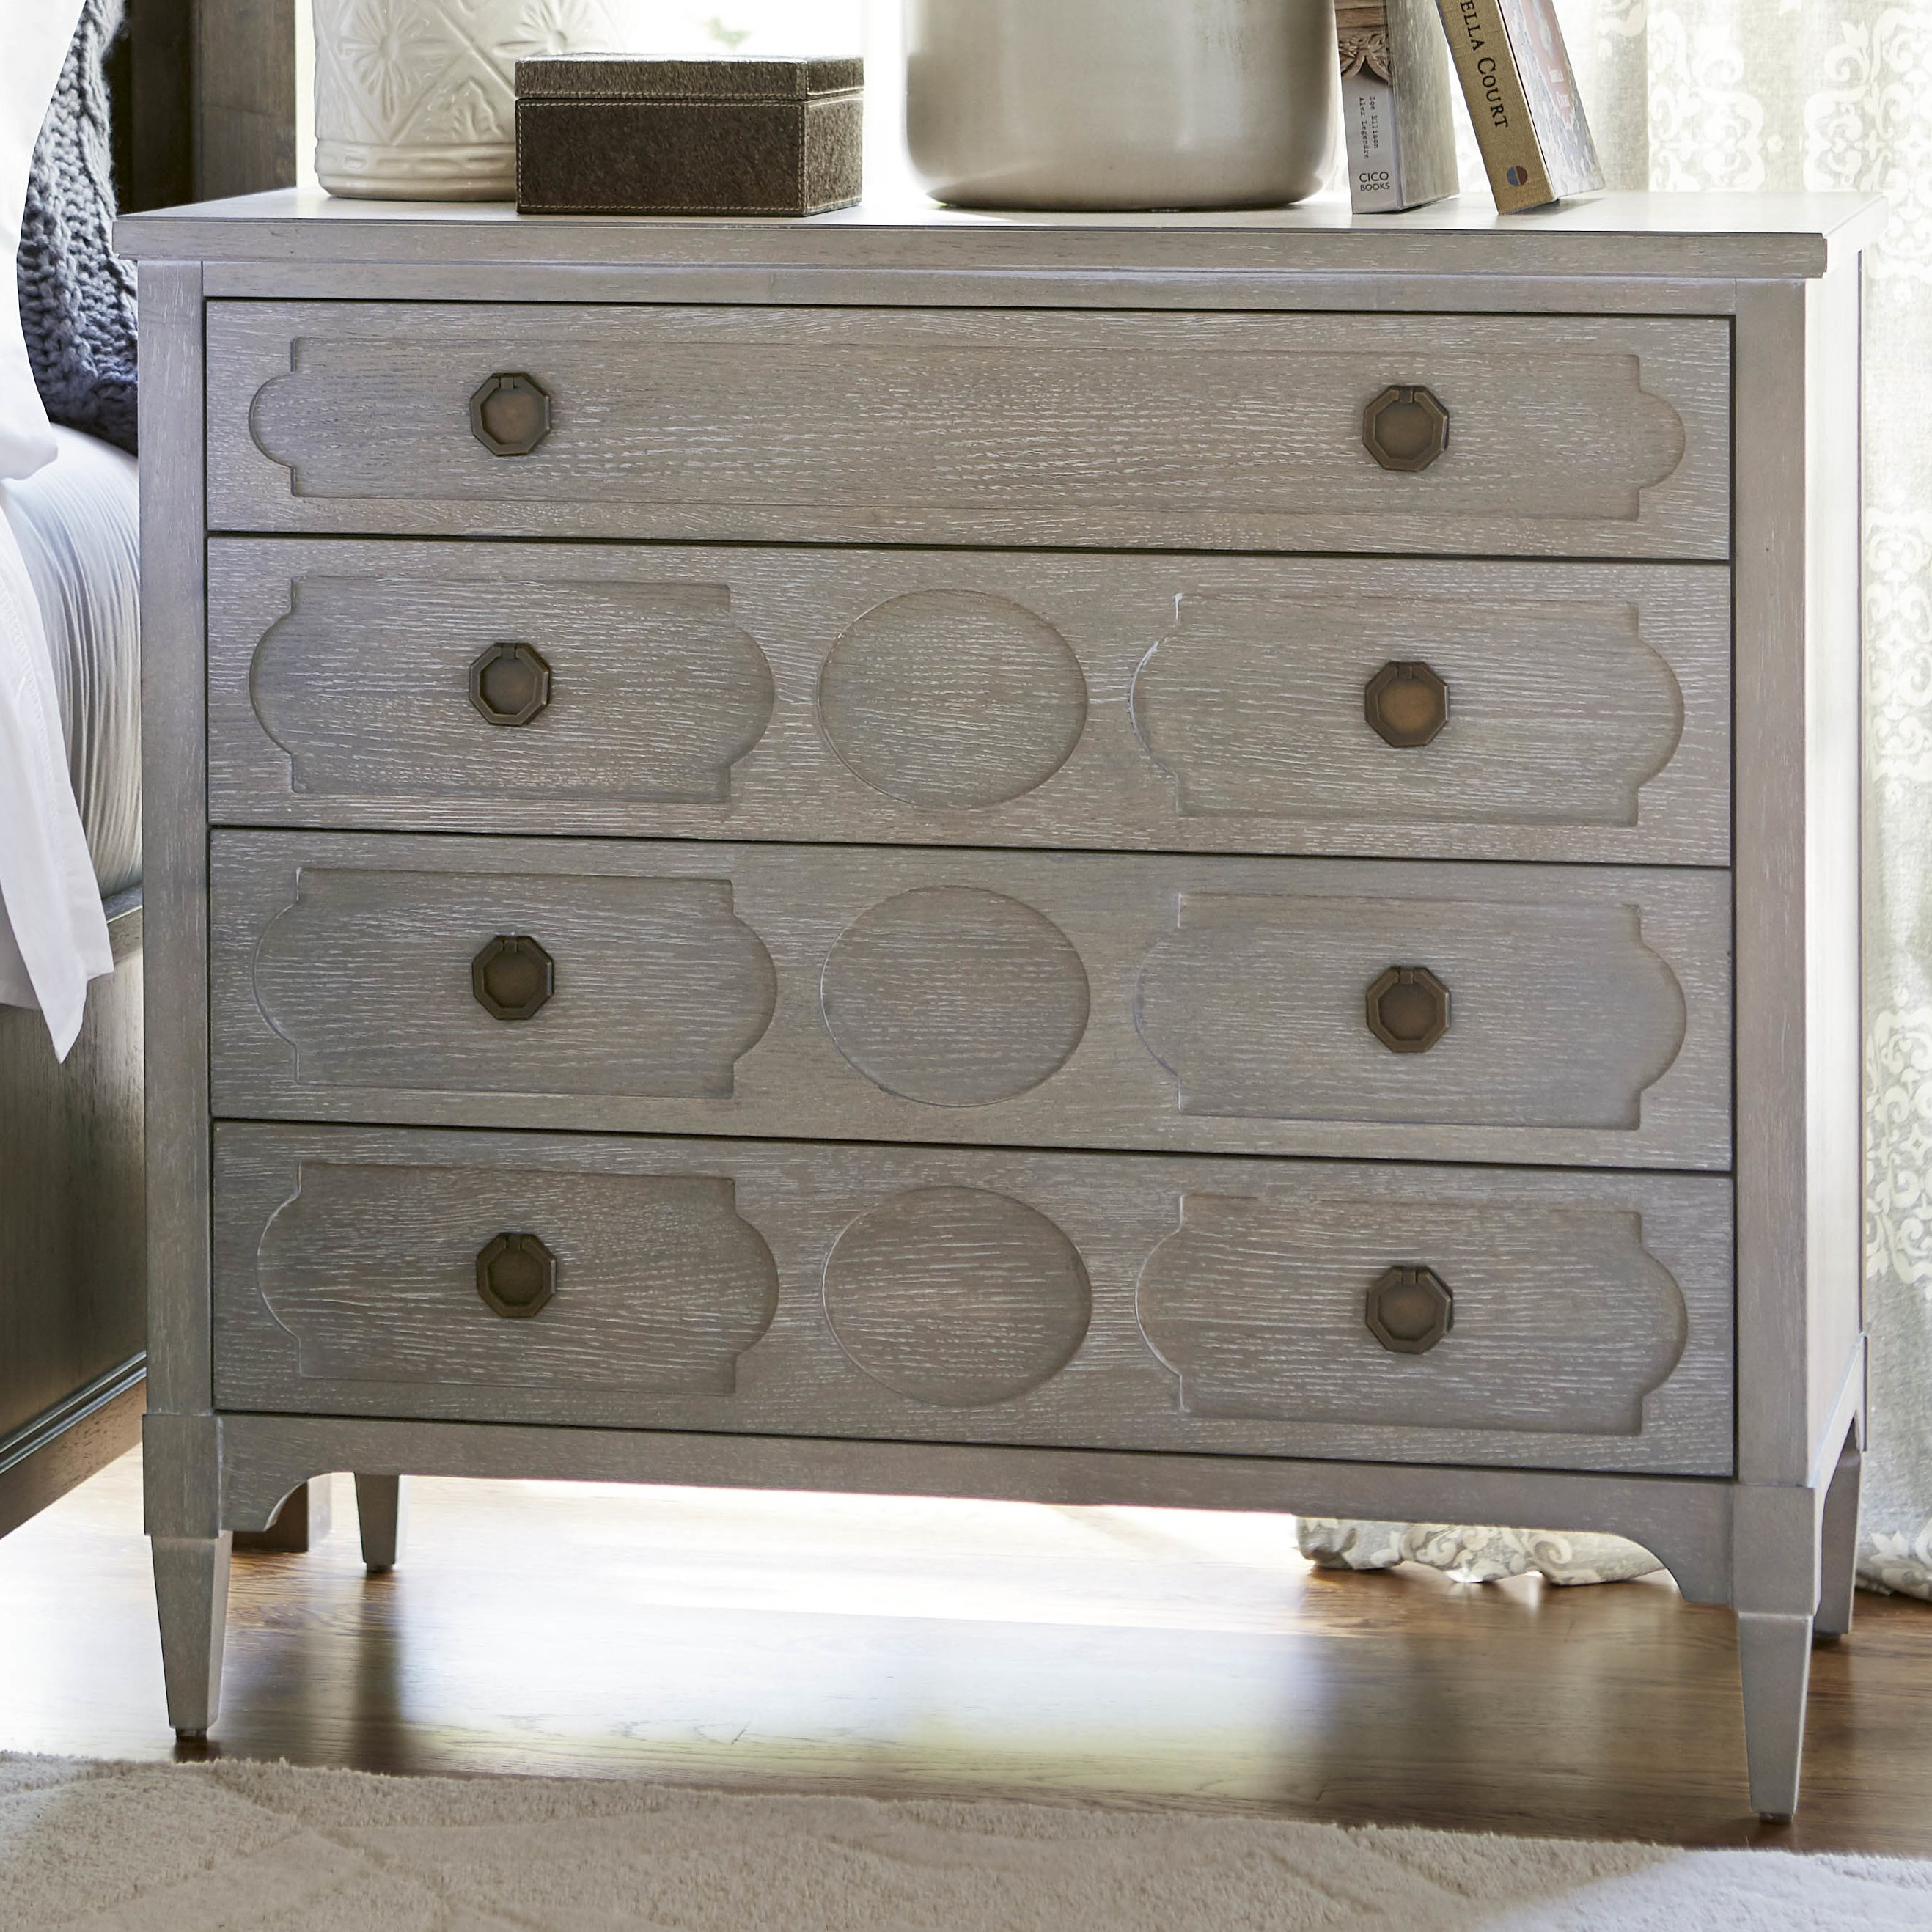 inspirations interior small storage design ideas with accent chest mirrored drawers handpainted cabinets furniture hall chests tall cabinet painted tables gold round end table